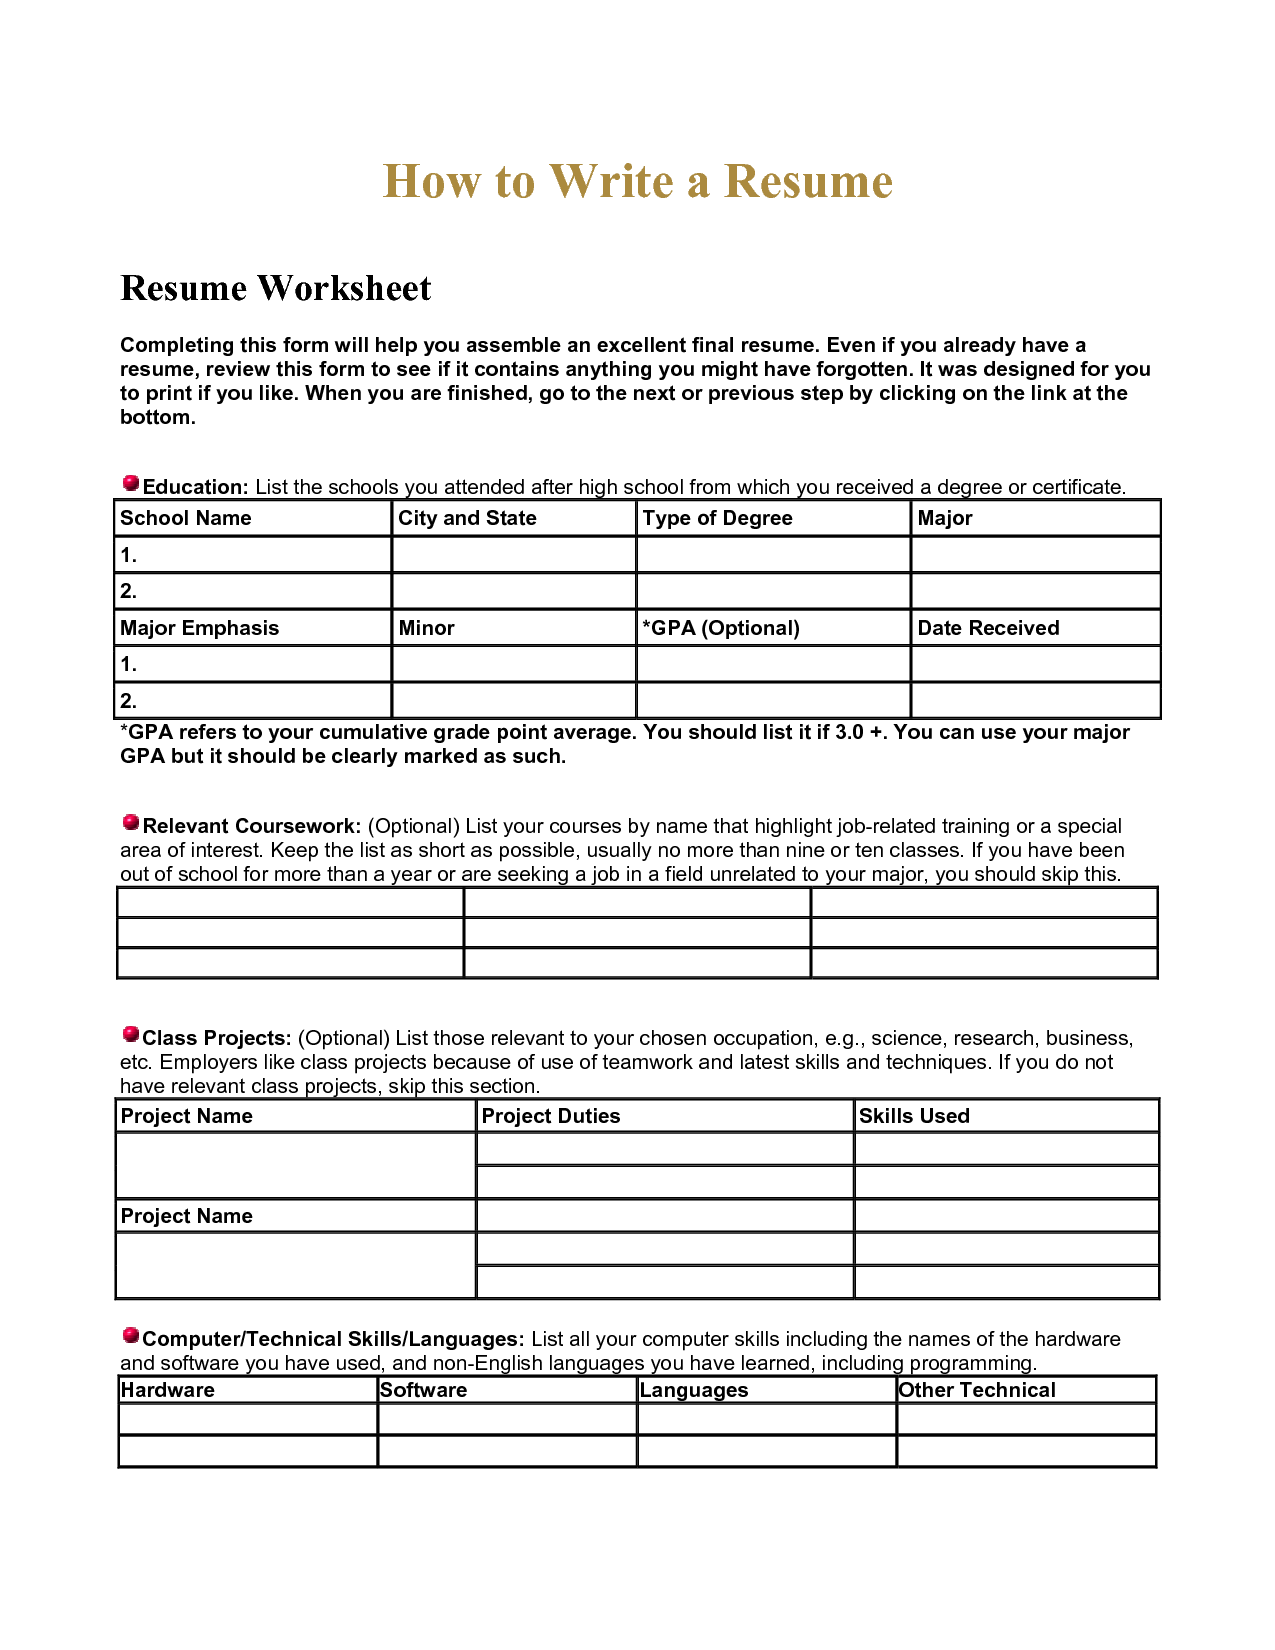 Printables Resume Worksheet high school resume and build a on pinterest